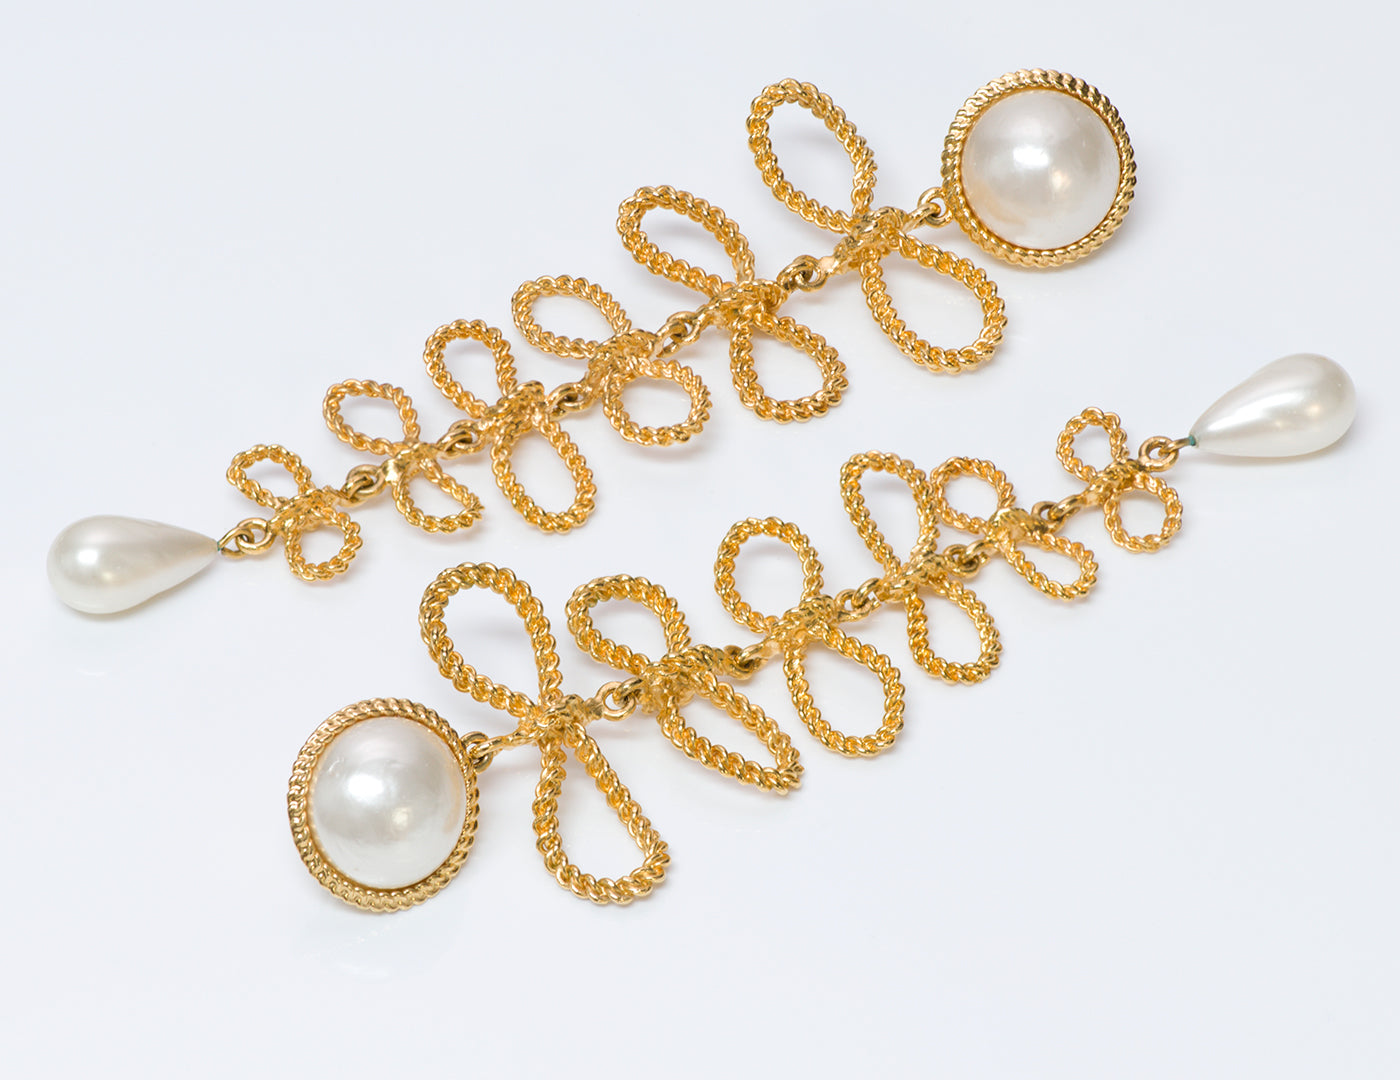 vintage-chanel-1960-s-extra-long-gold-tone-bow-pearl-earrings